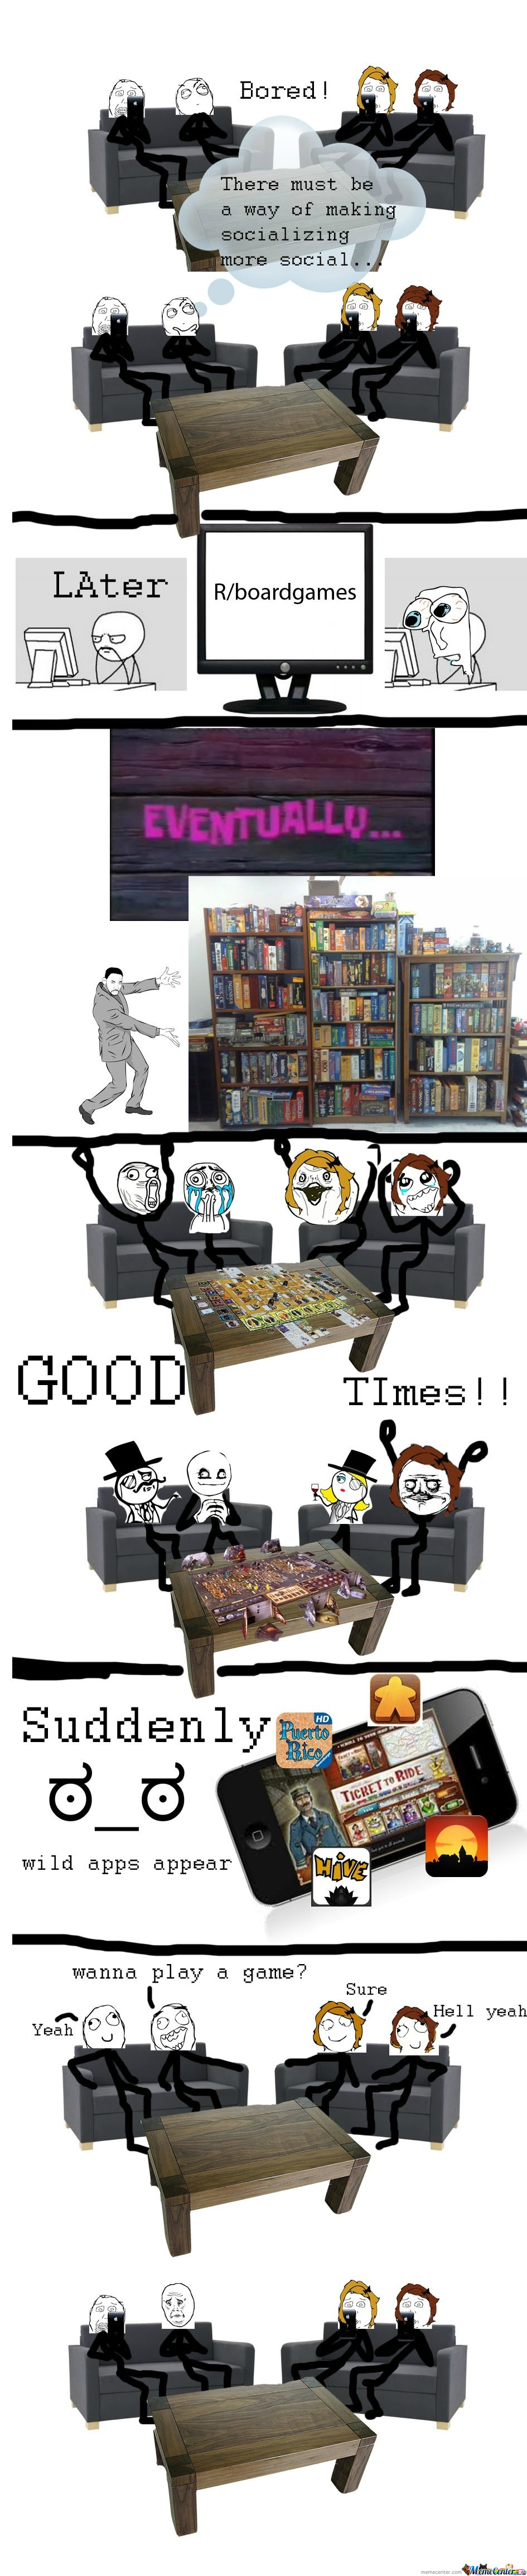 Board Game Rage!